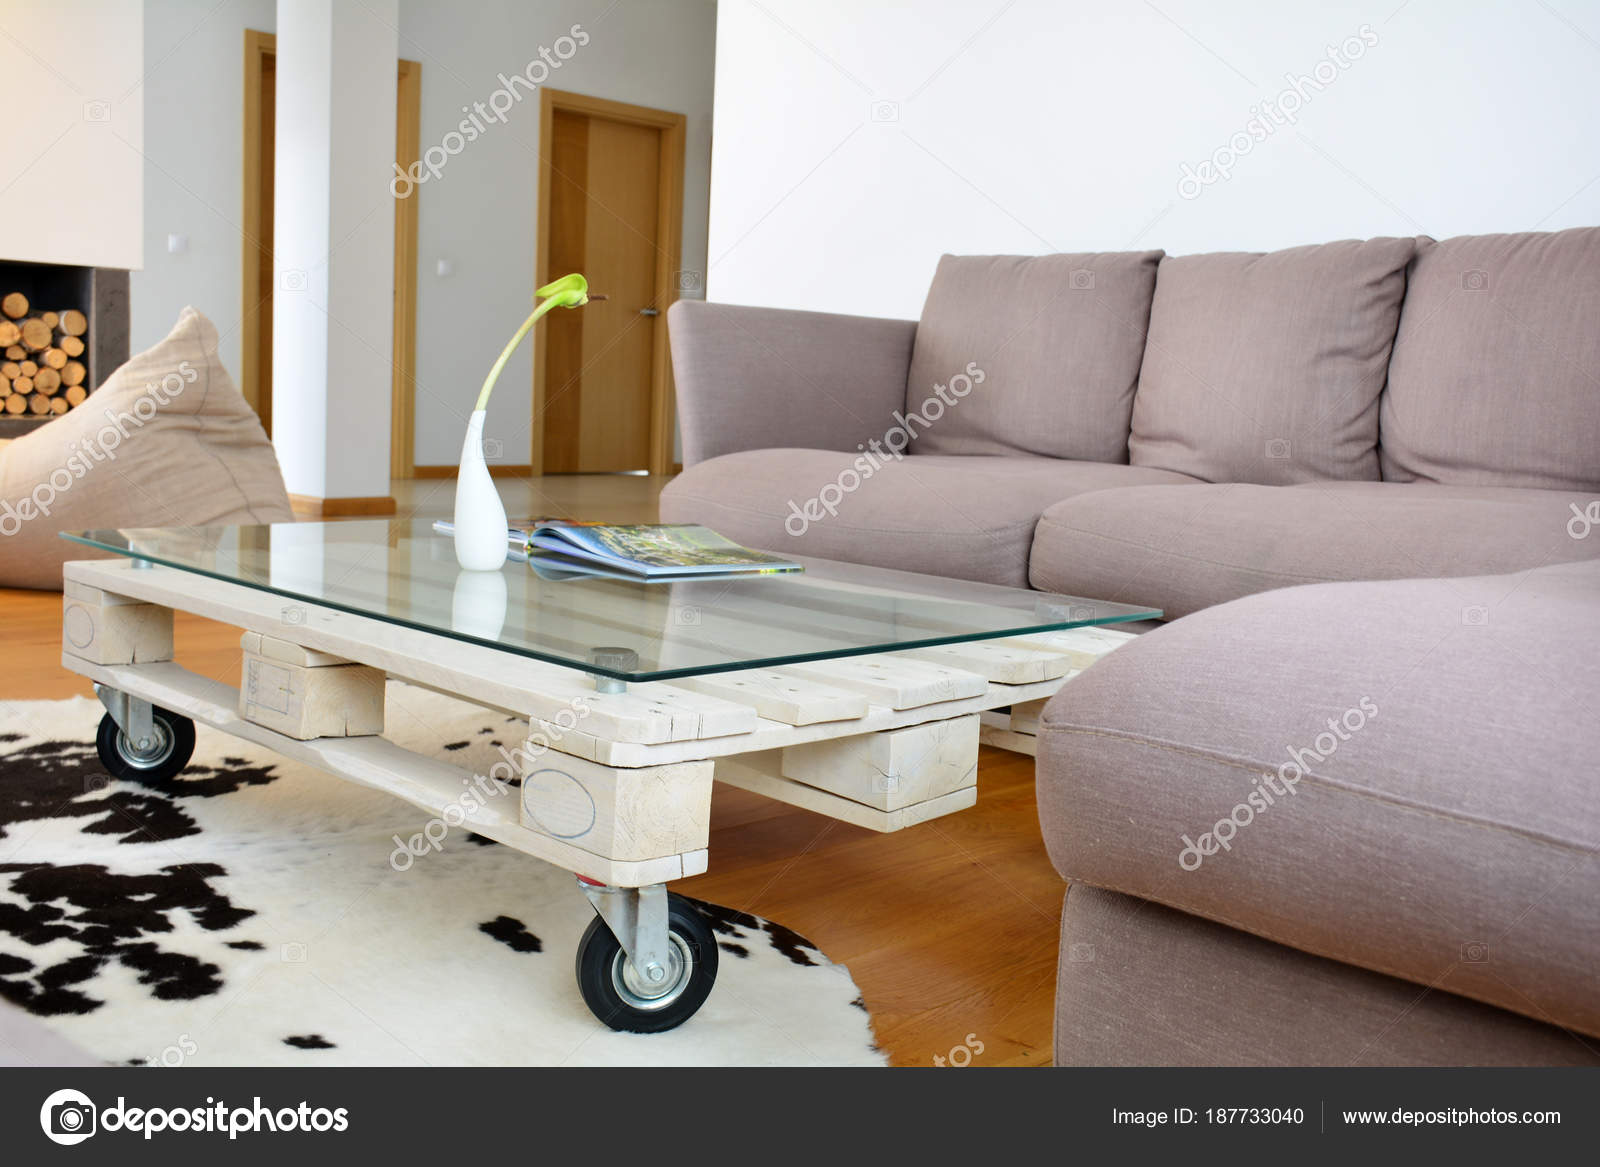 Table Basse Salon Moderne Table Basse Palette Dans Le Salon Moderne Photographie